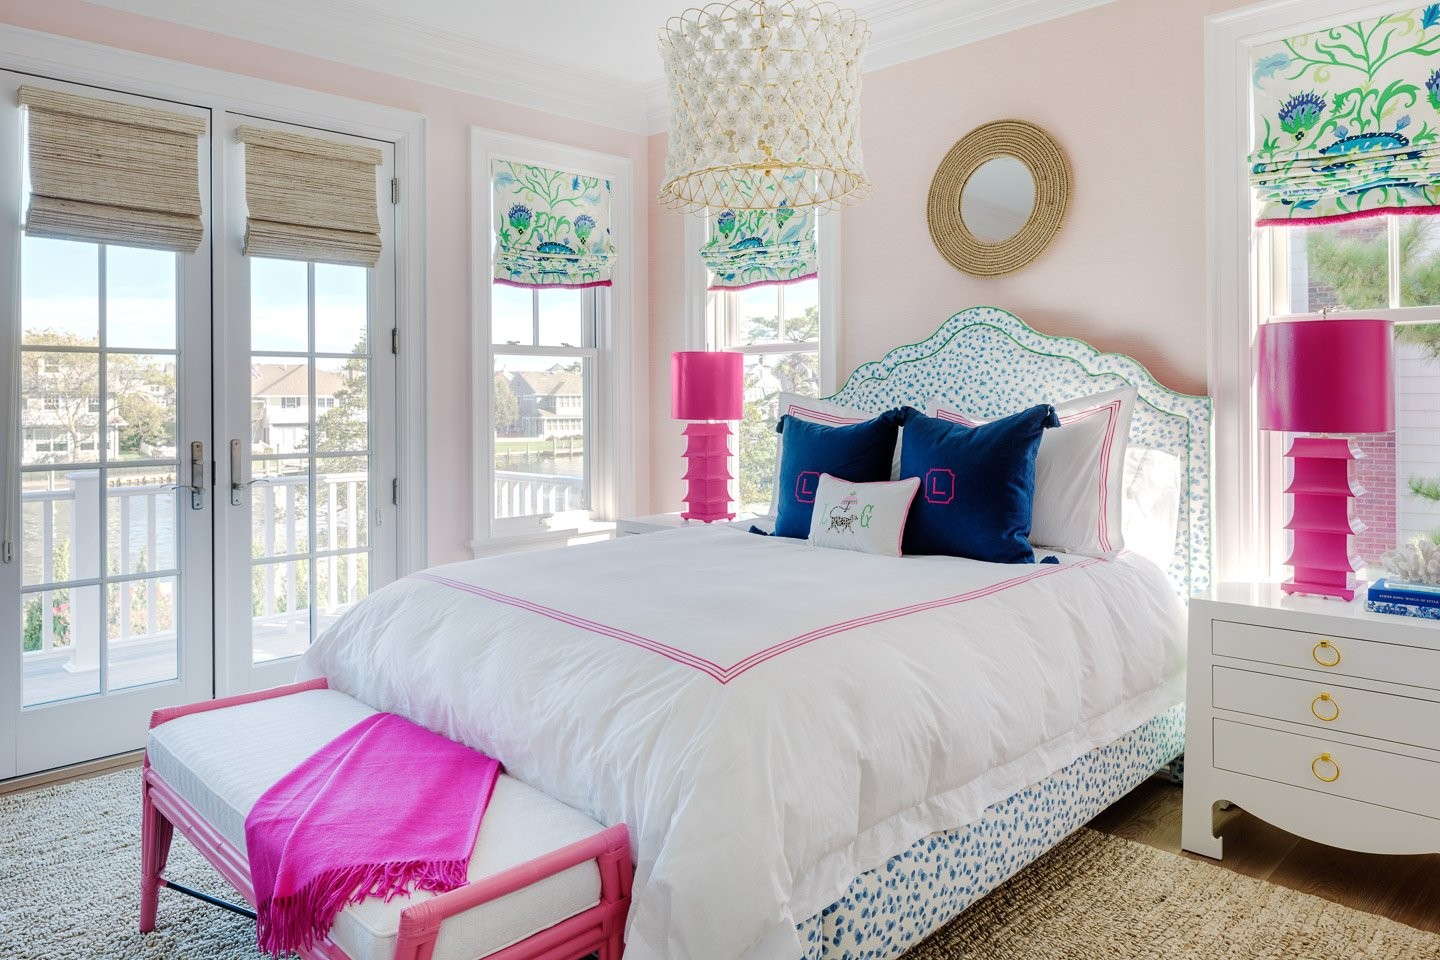 Blakely Interior Design | The Jersey Palm Project | Daughter's Bedroom